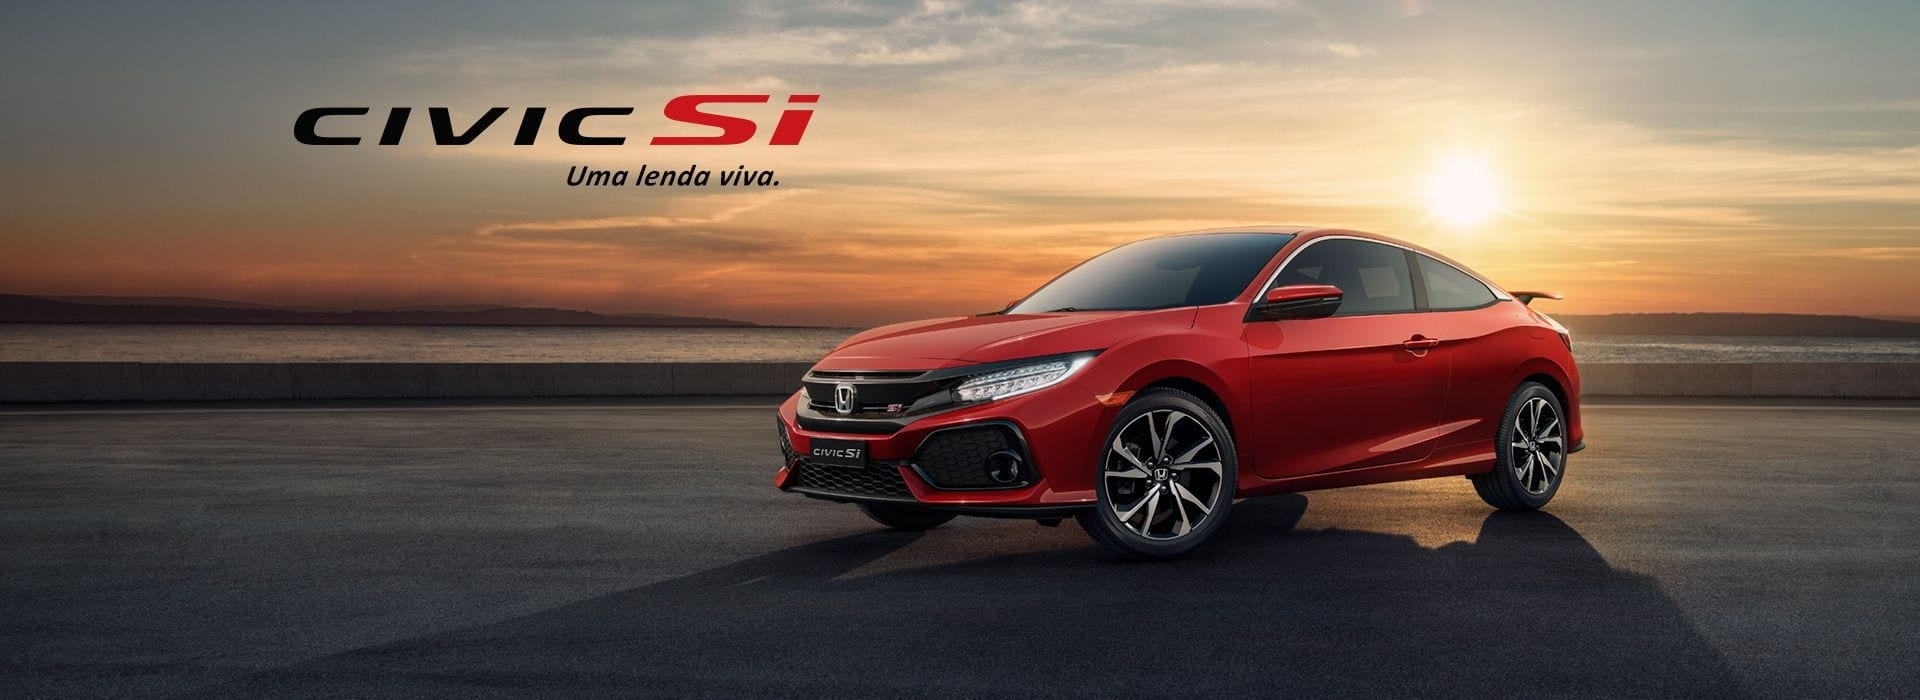 Honda Shori Civic SI HAB 2018 CIVIC Si SITE HERO DESKTOP 0.jpg